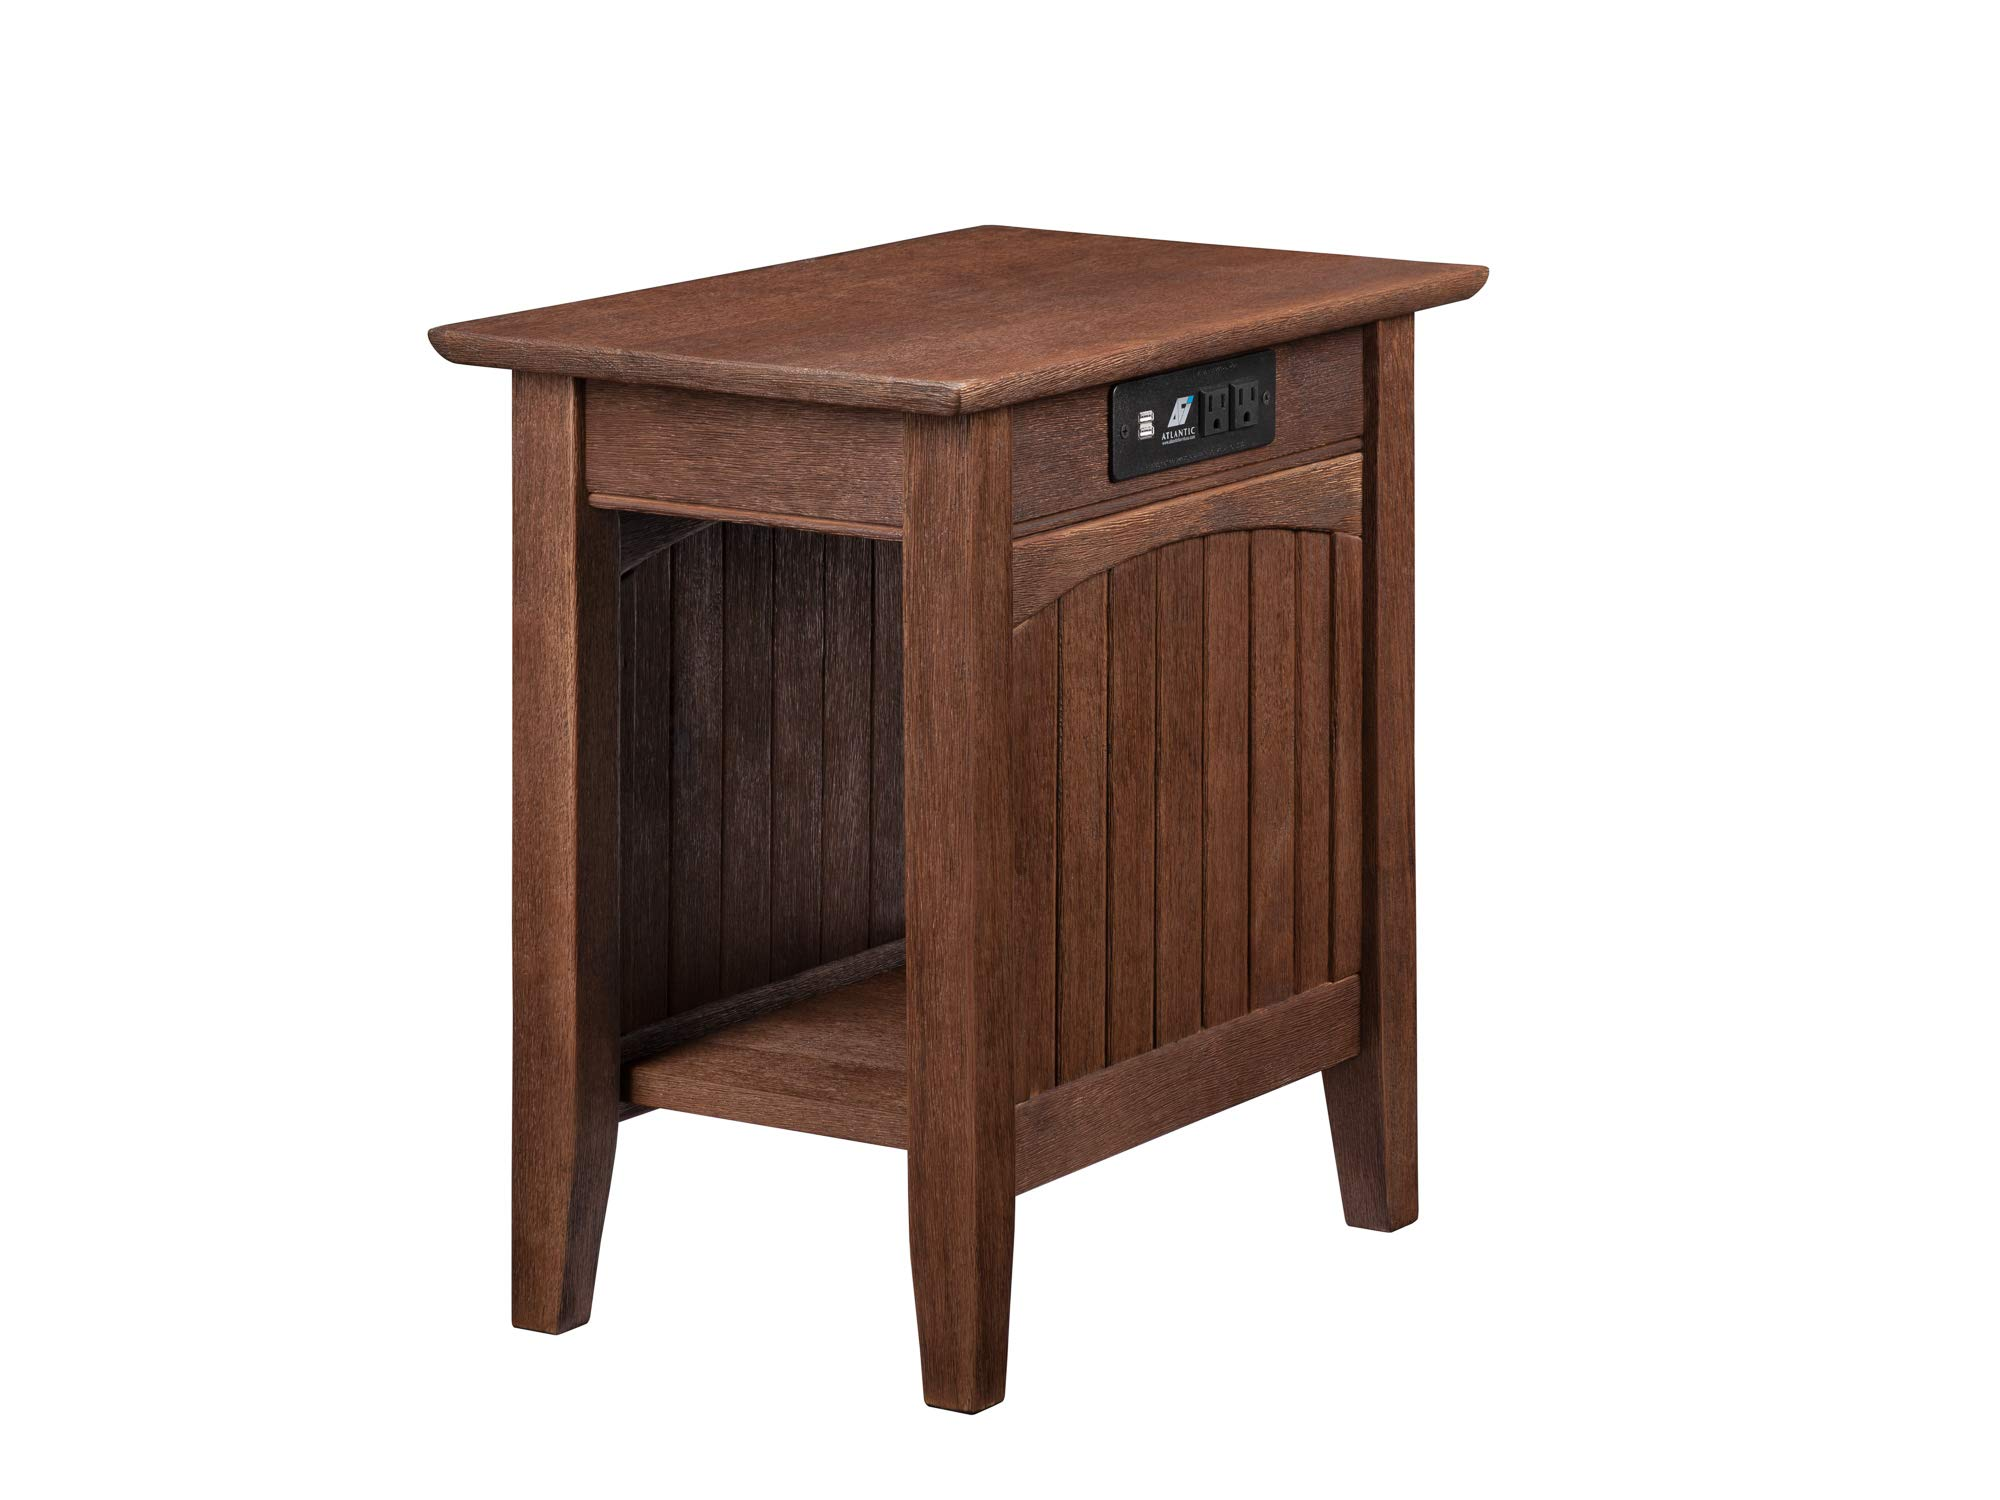 Atlantic Furniture AH13313 Nantucket Side Table, Burnt Amber by Atlantic Furniture